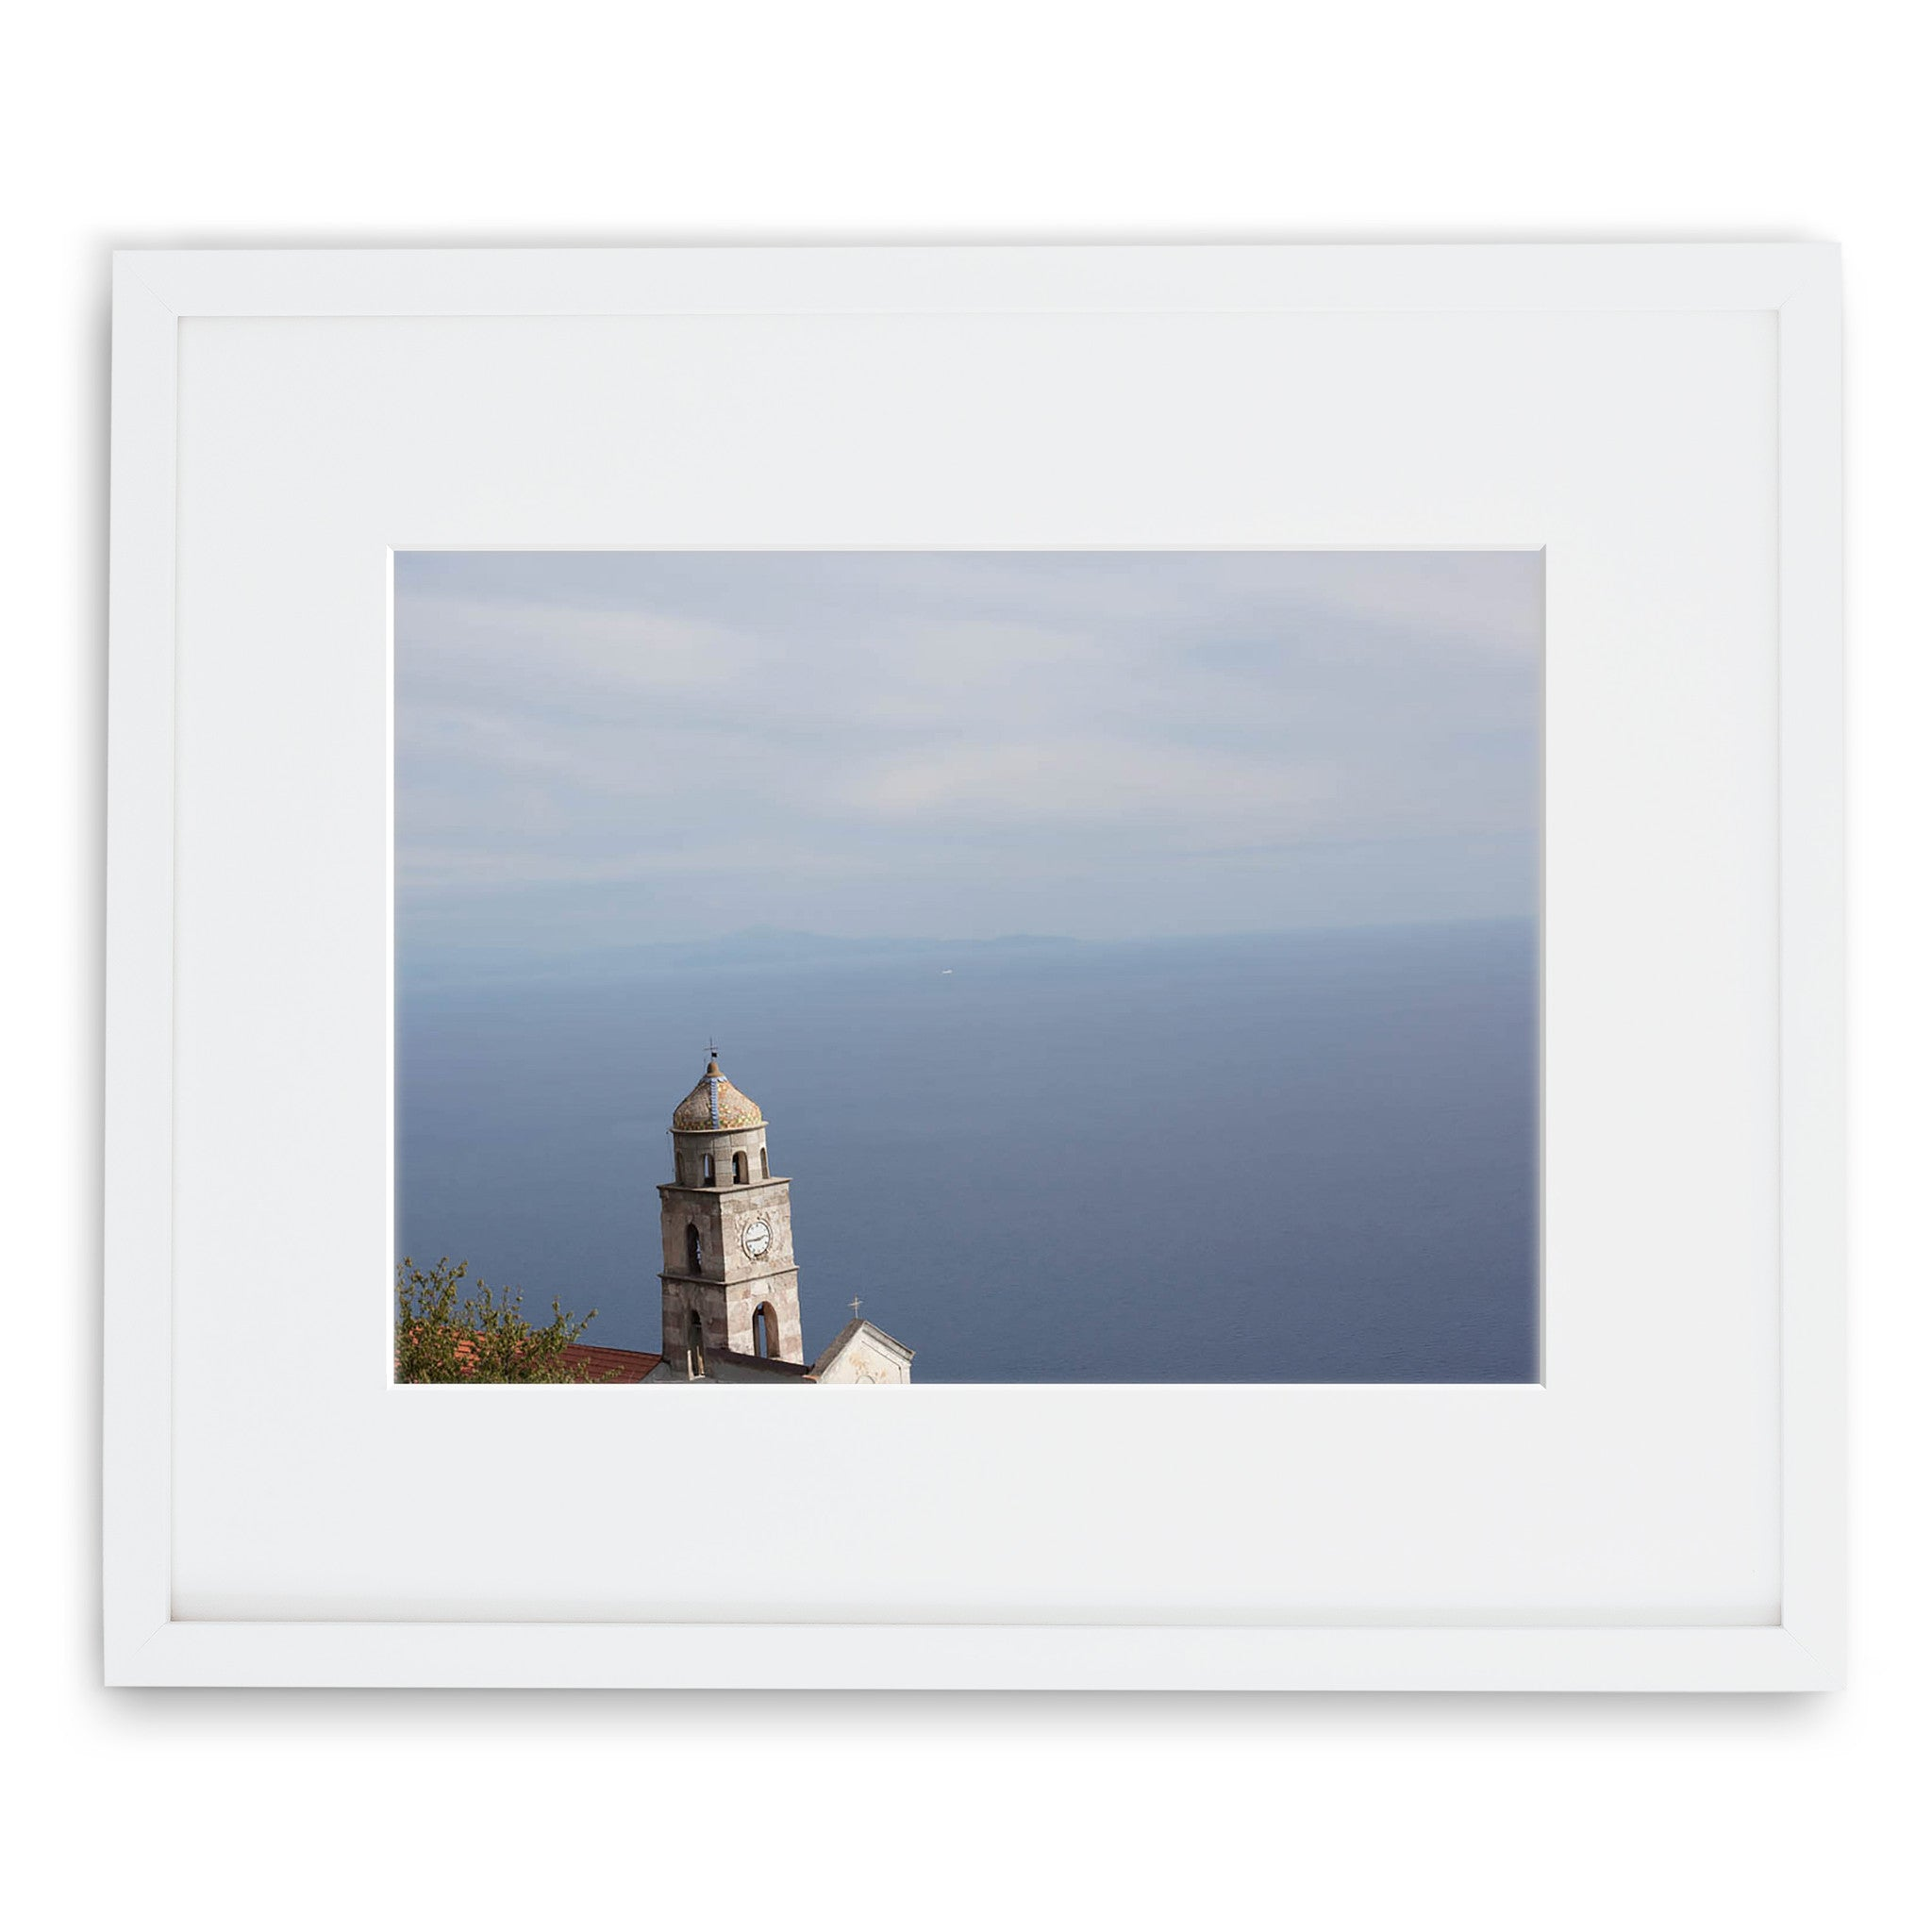 Jessie Chaney Prints - Cliffside Church